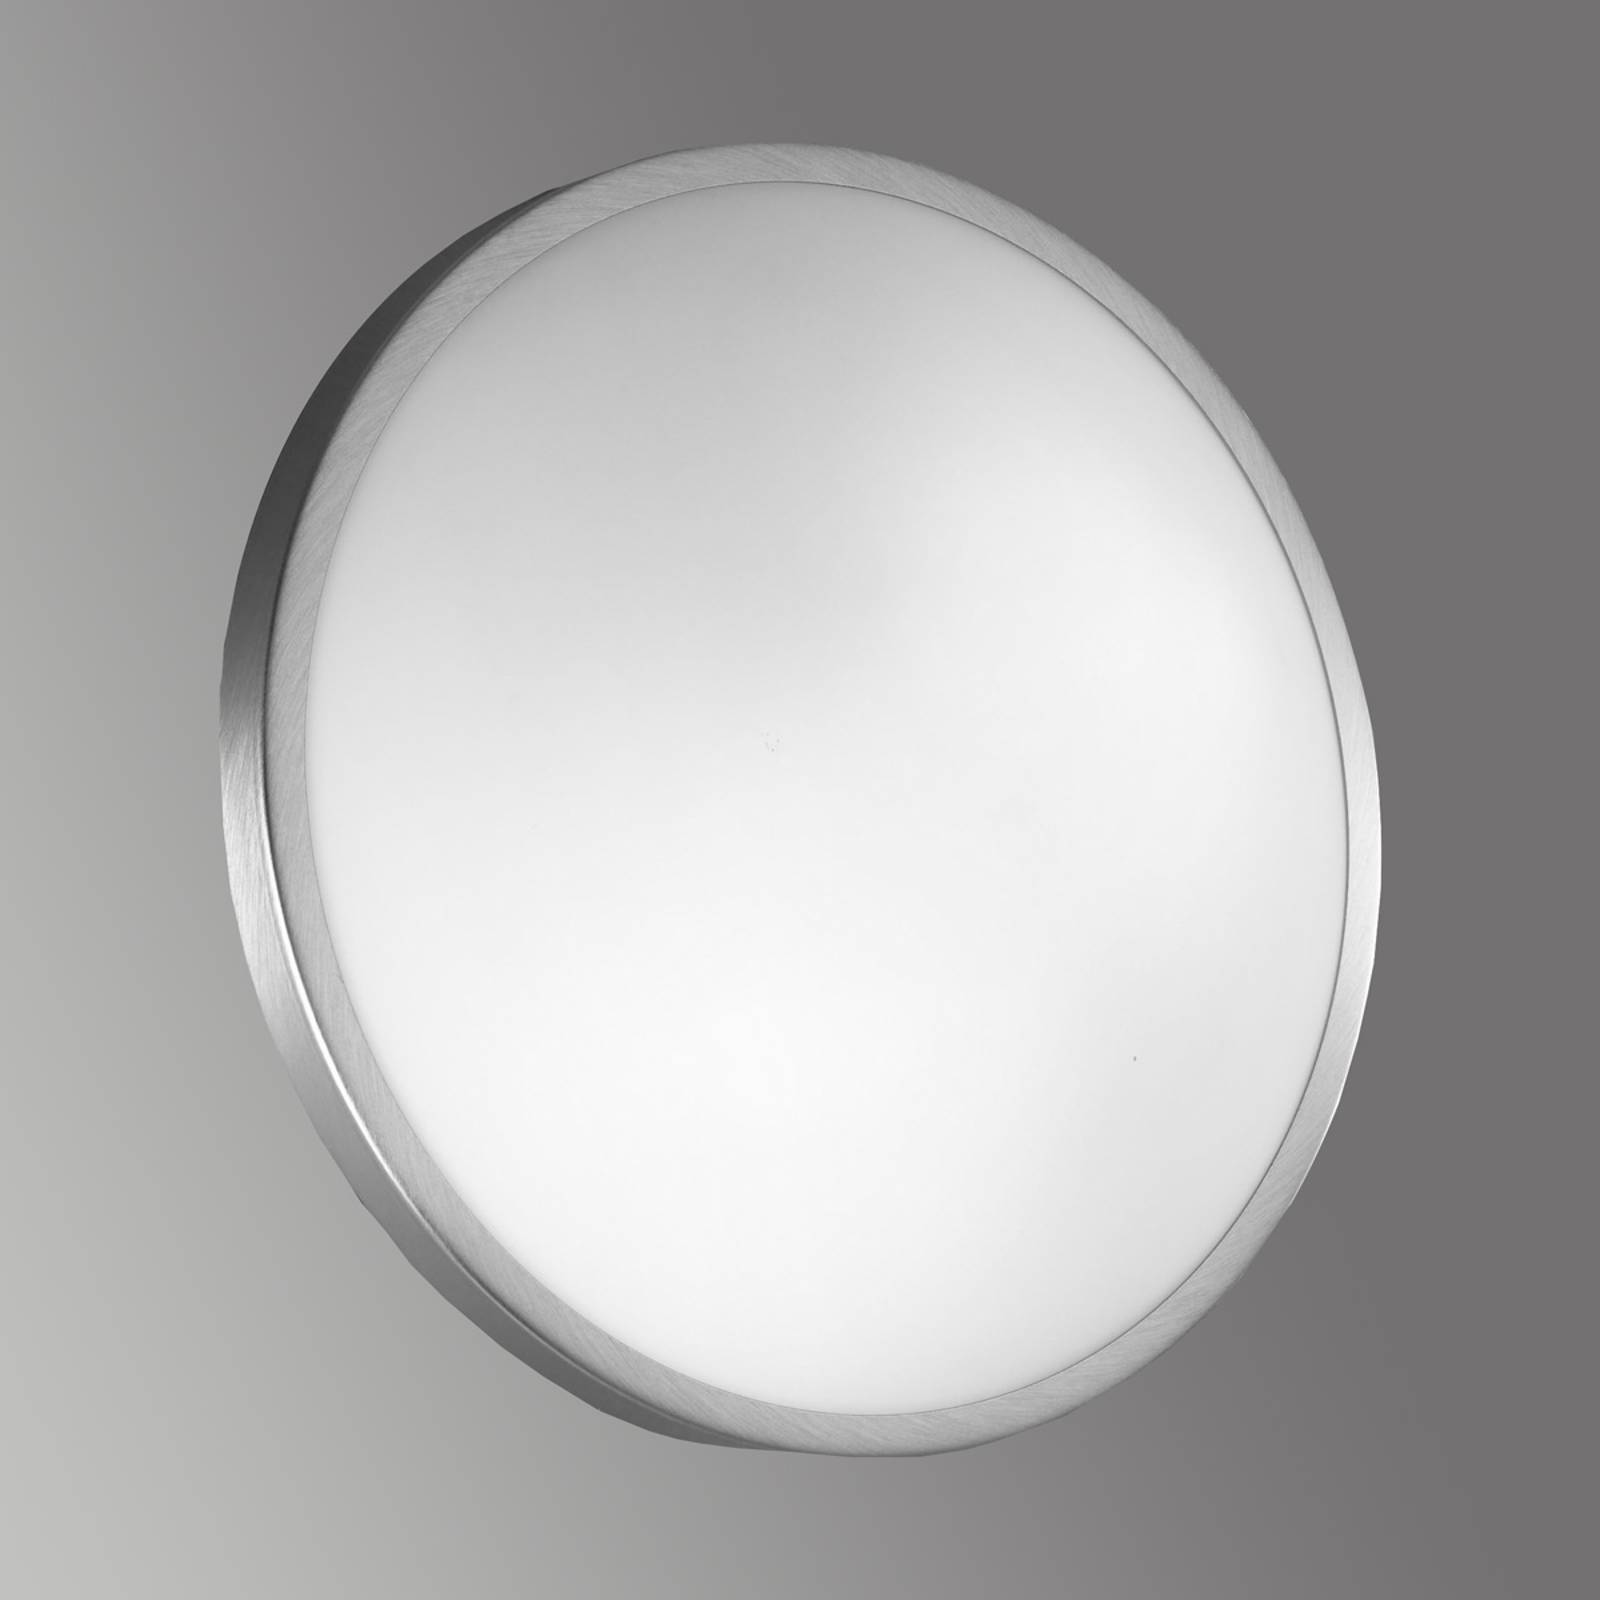 Ceiling & wall light PLAZA, glass 41 cm nickel from FABAS LUCE